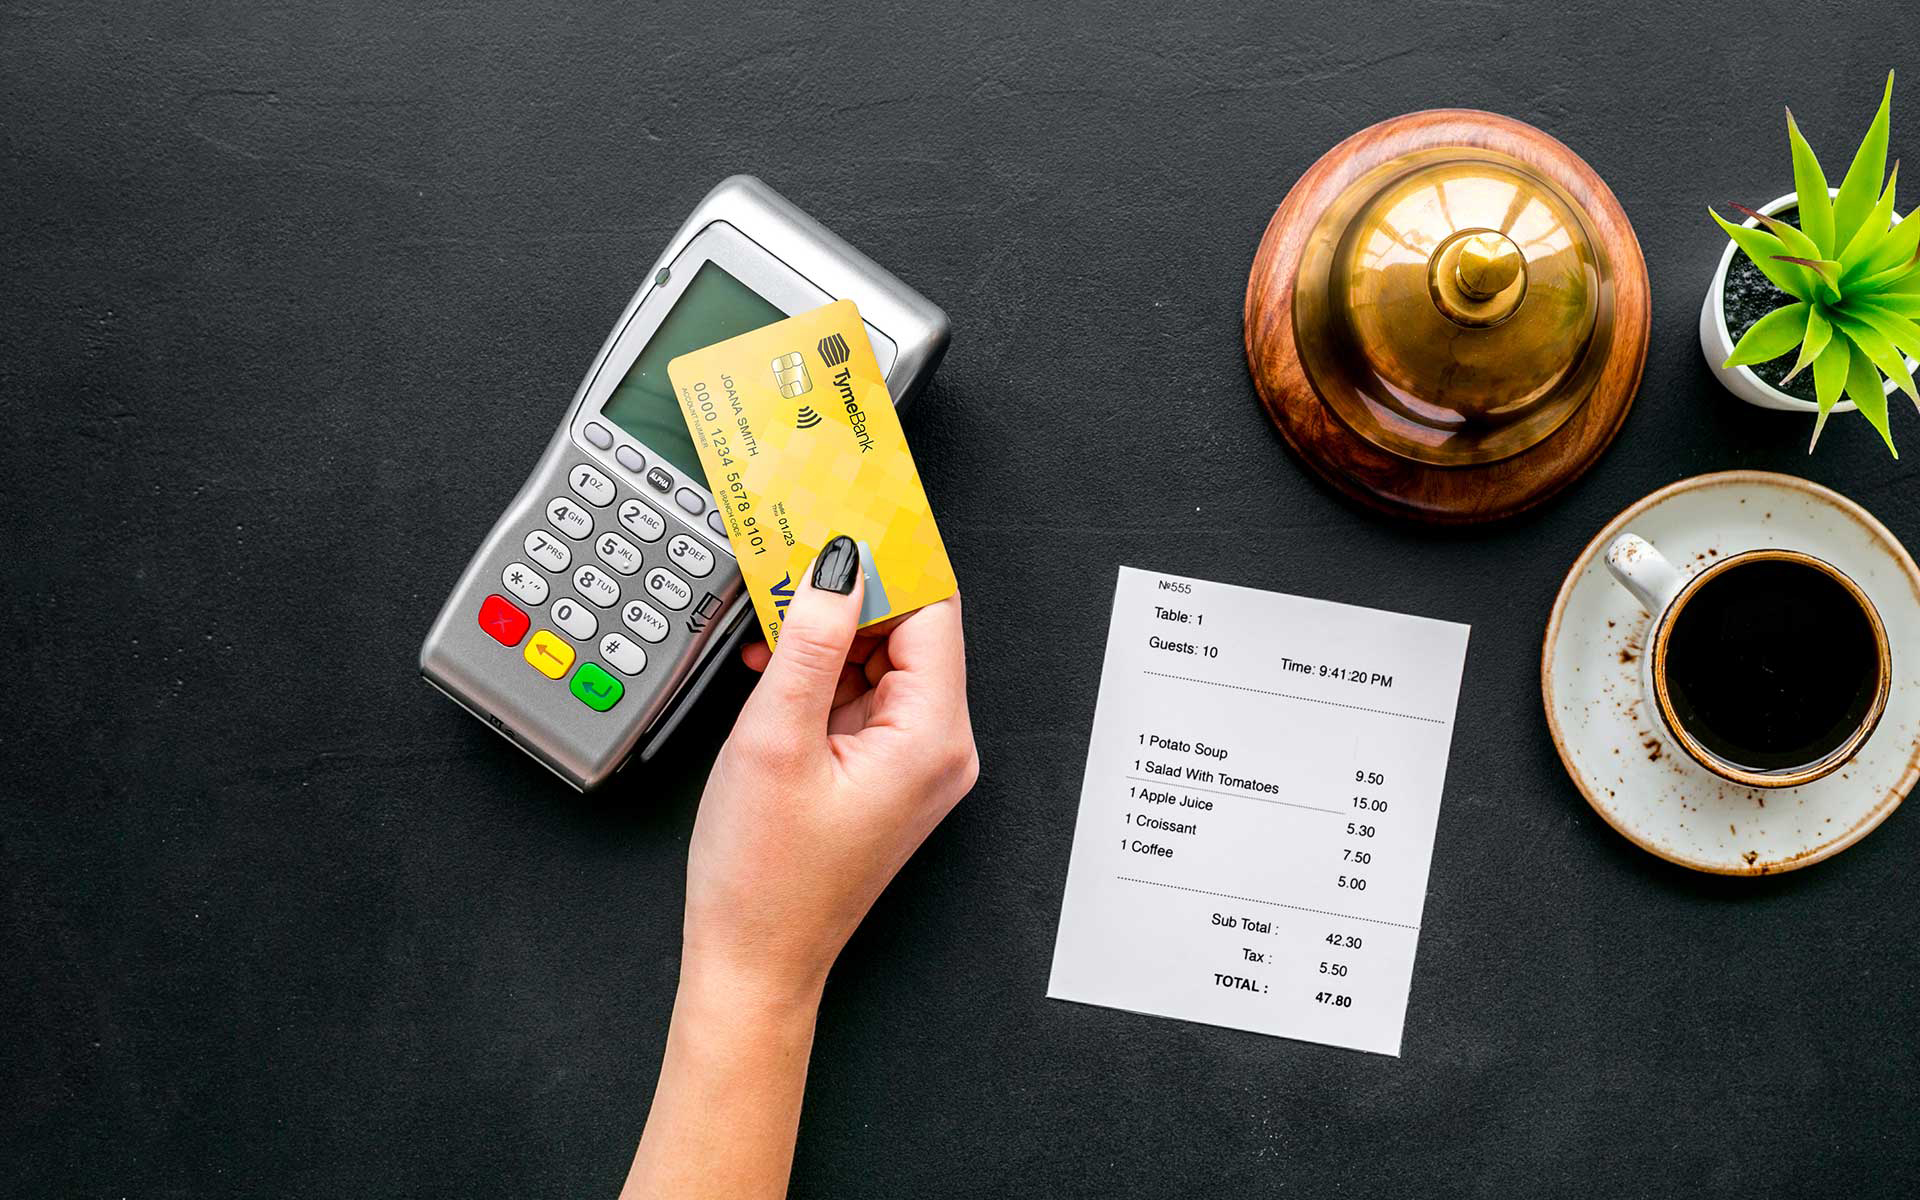 TymeBank and IDEMIA Collaborate Towards Increased Security and Convenience in Customer Card Issuance